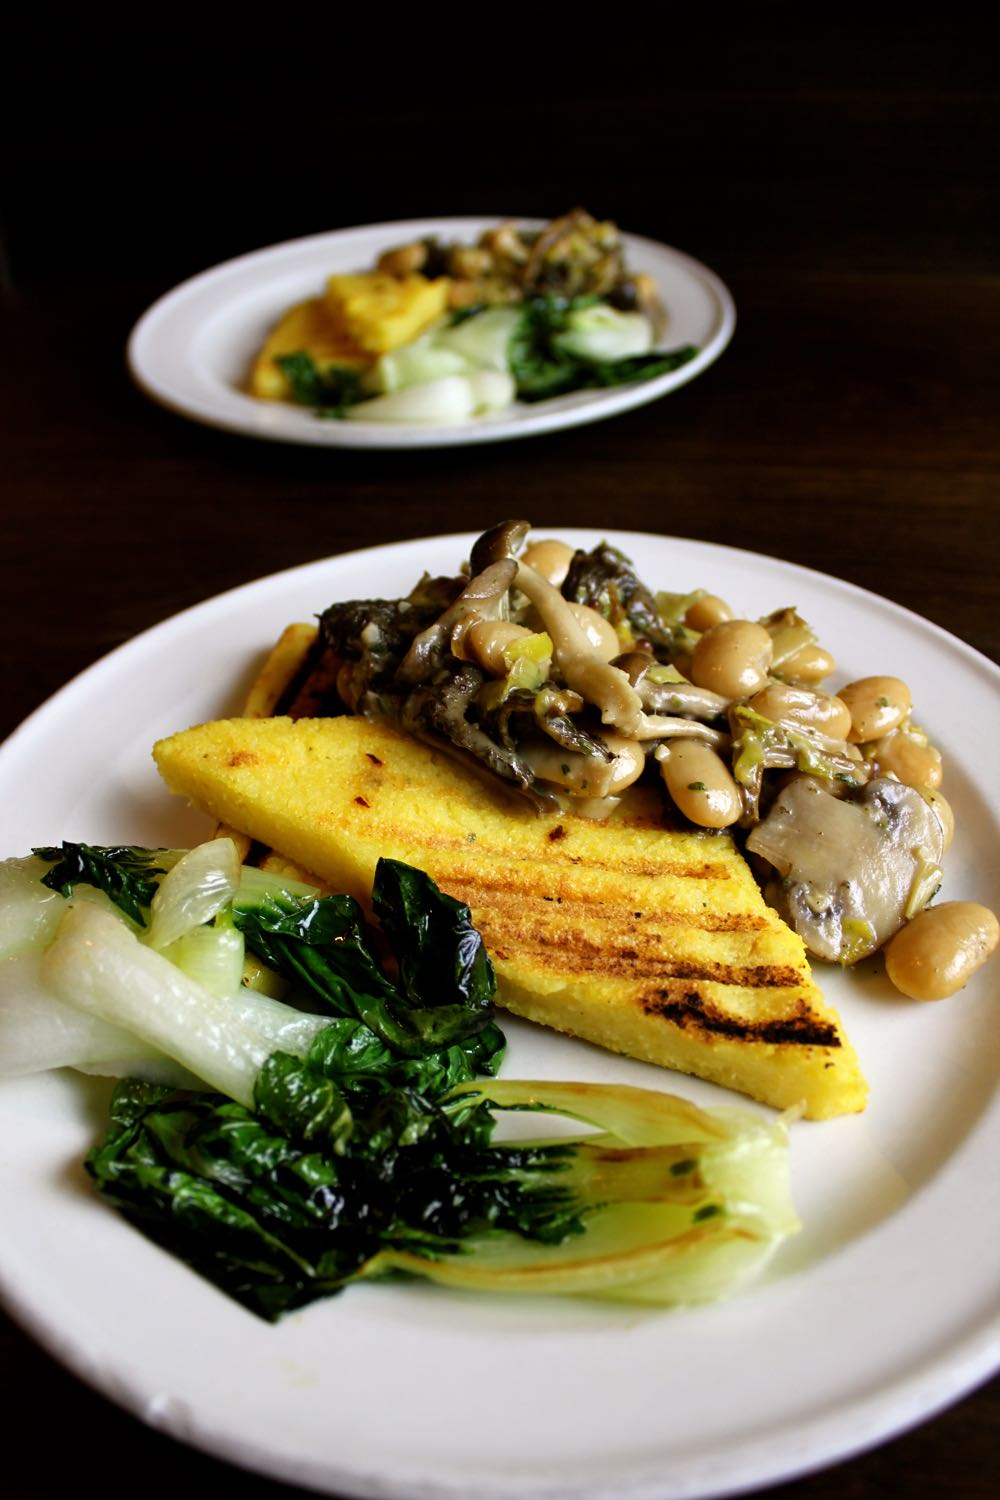 Vegan Creamy Mushrooms and polenta, served on a white plate.